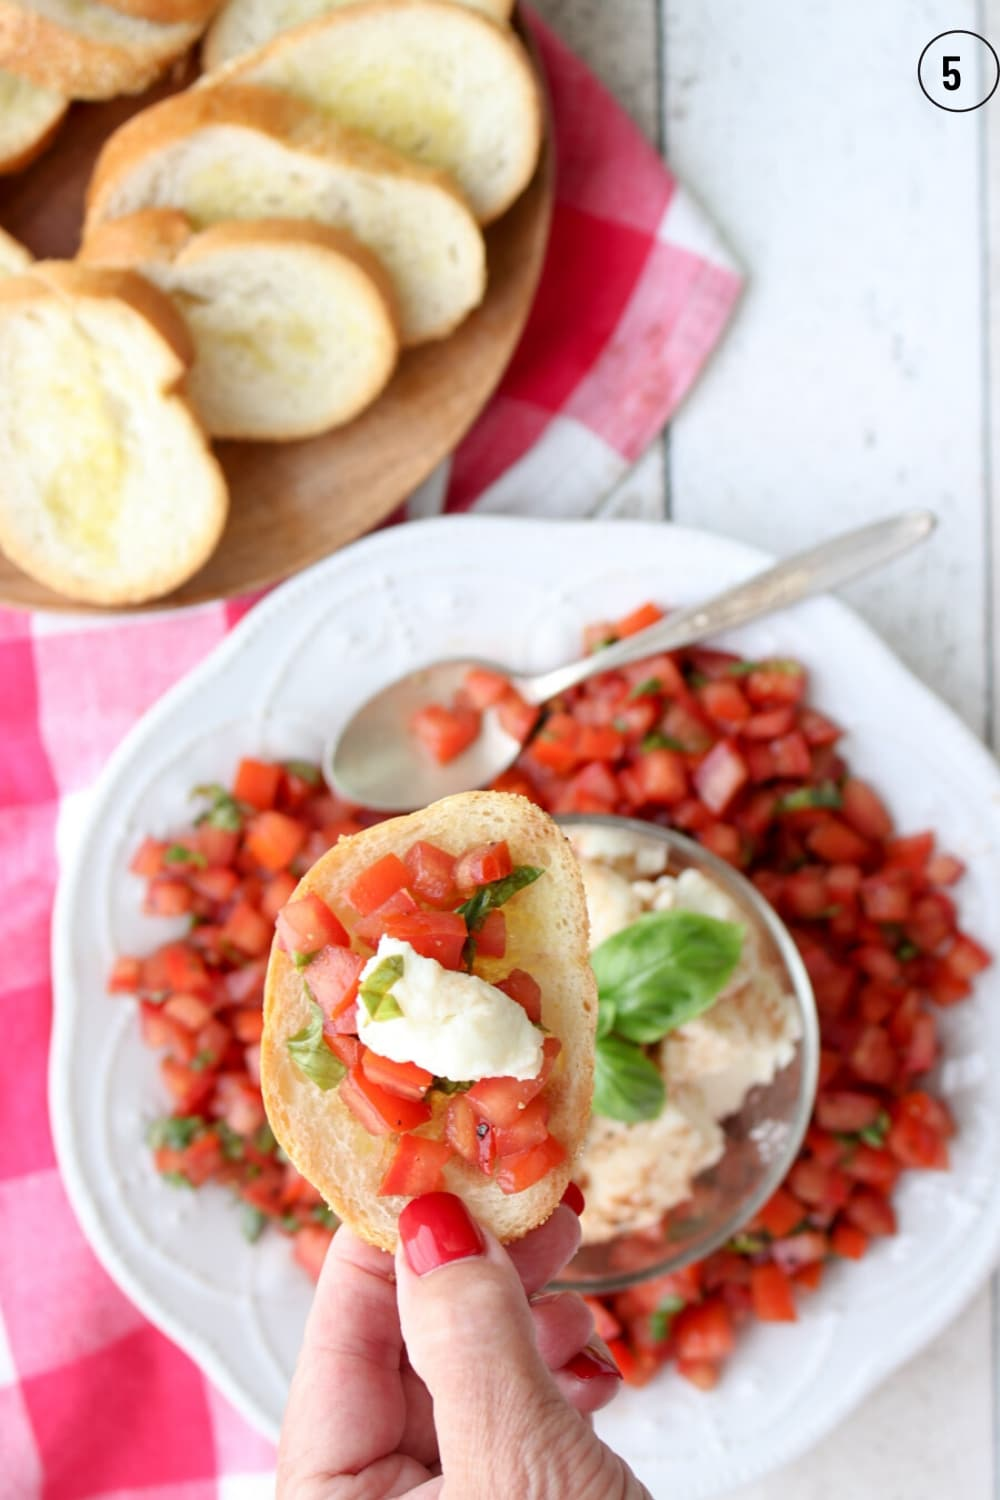 A hand holding a piece of toast topped with tomato bruschetta and cheese